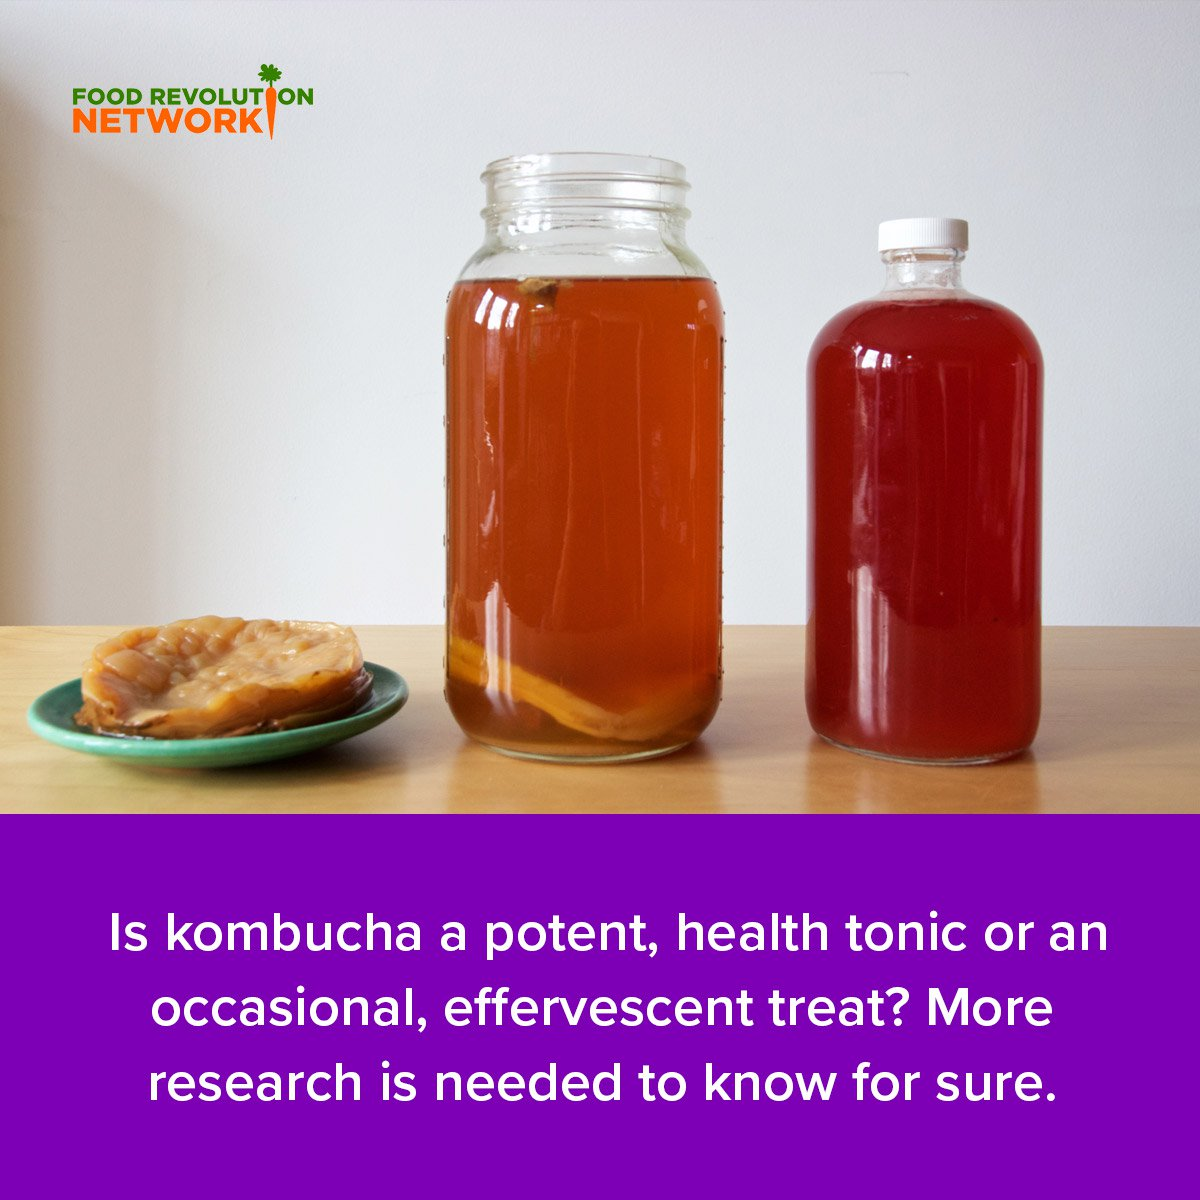 Is kombucha a potent, health tonic or an occasional, effervescent treat? More research is needed to know for sure.